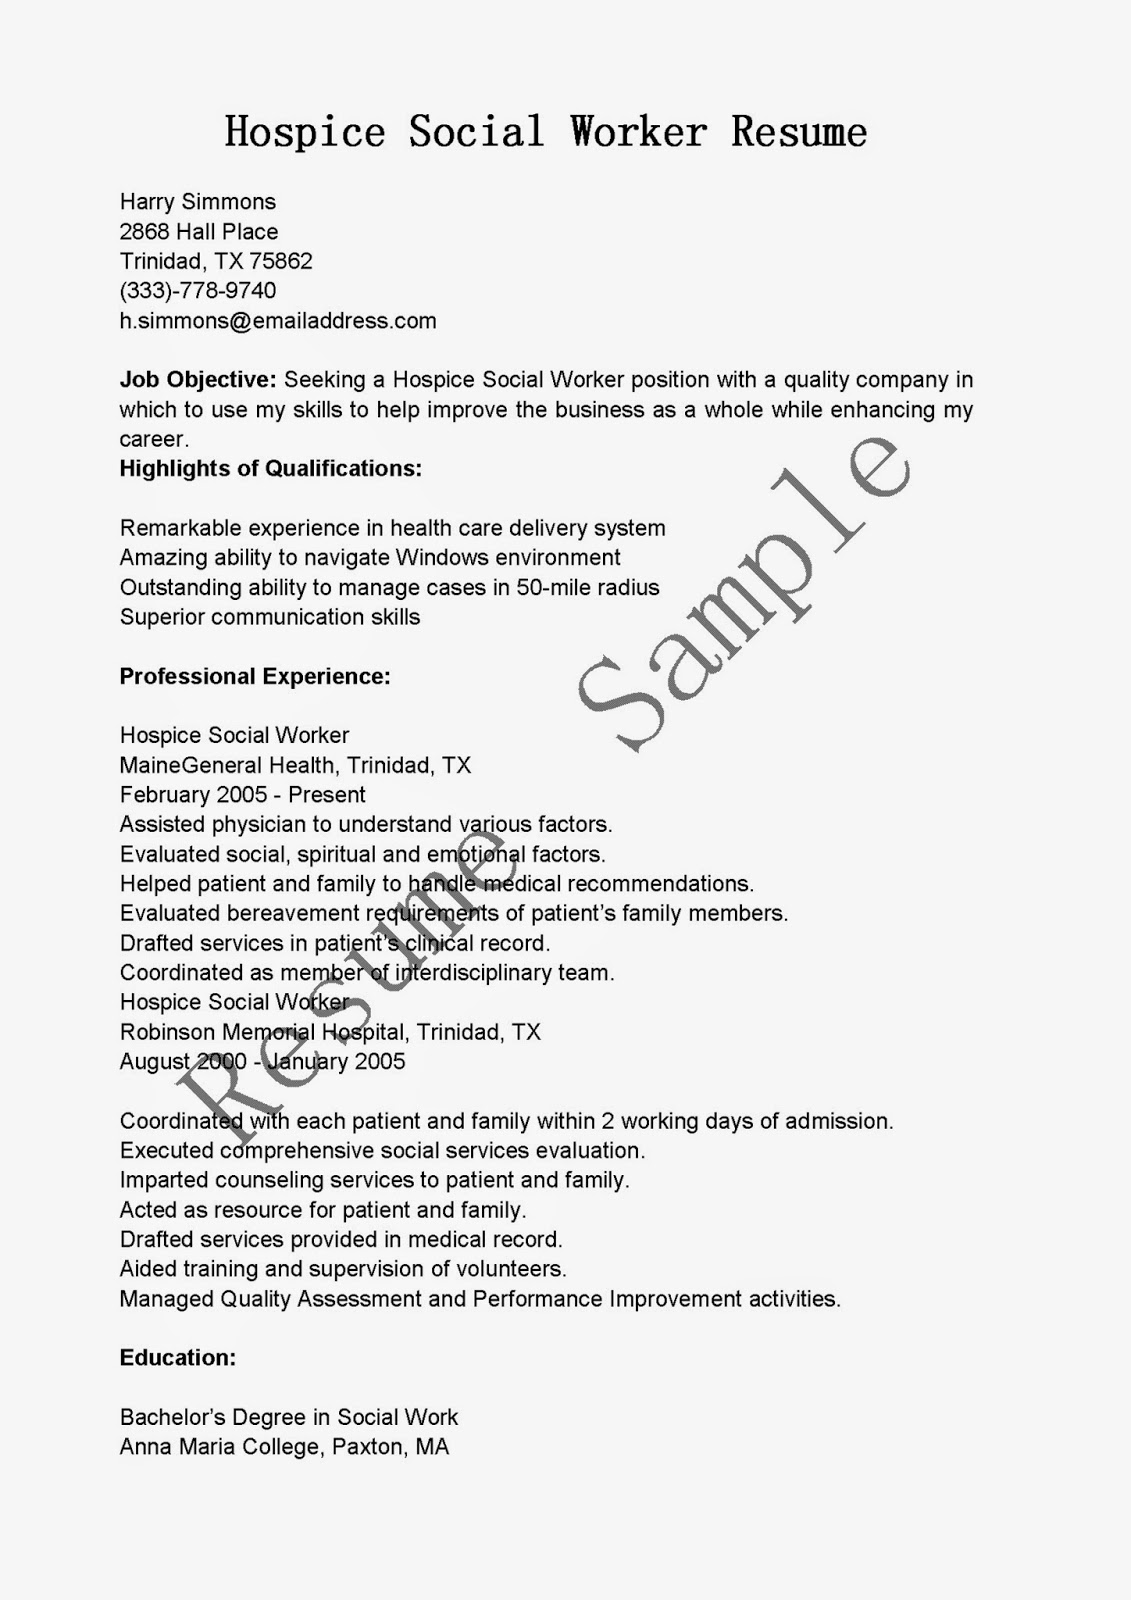 Hospital Social Worker Cover Letter Cafeteria